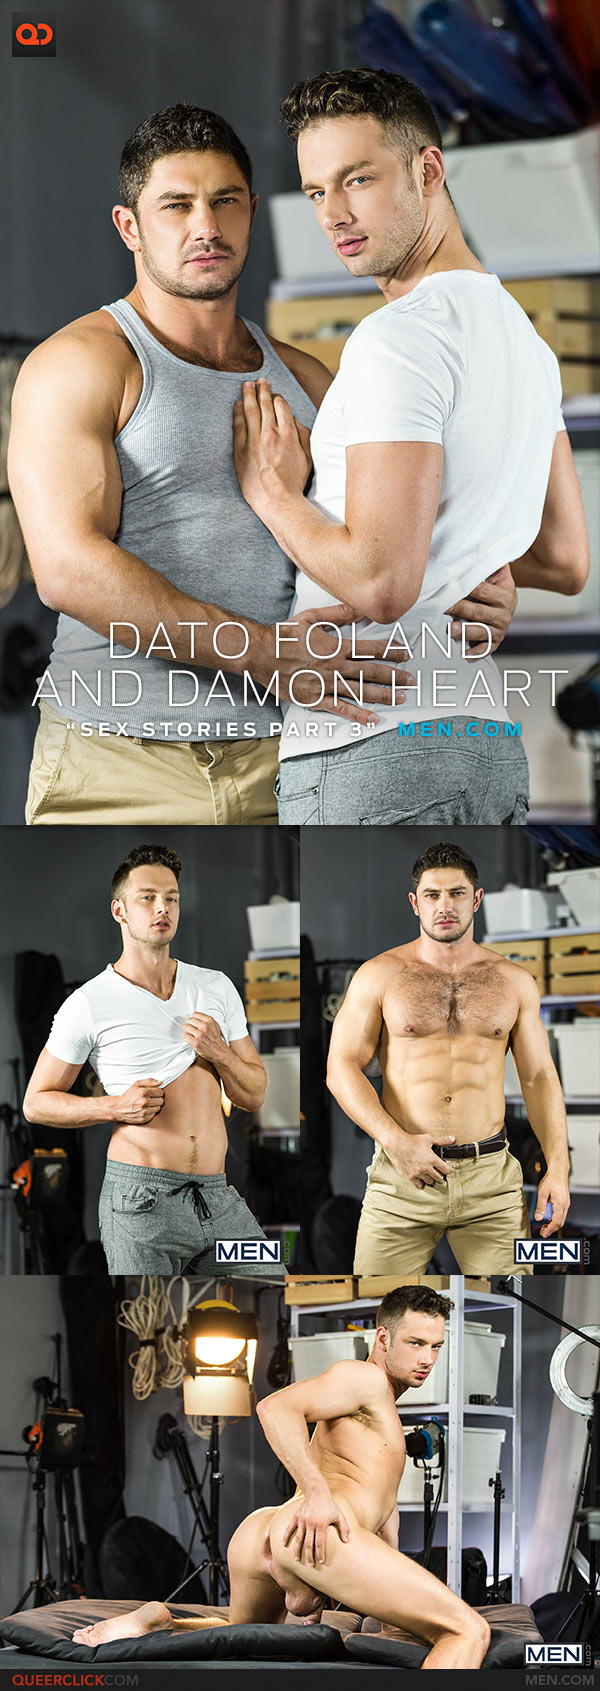 Men.com: Dato Foland Fucks Damon Heart - Sex Stories Pt. 3